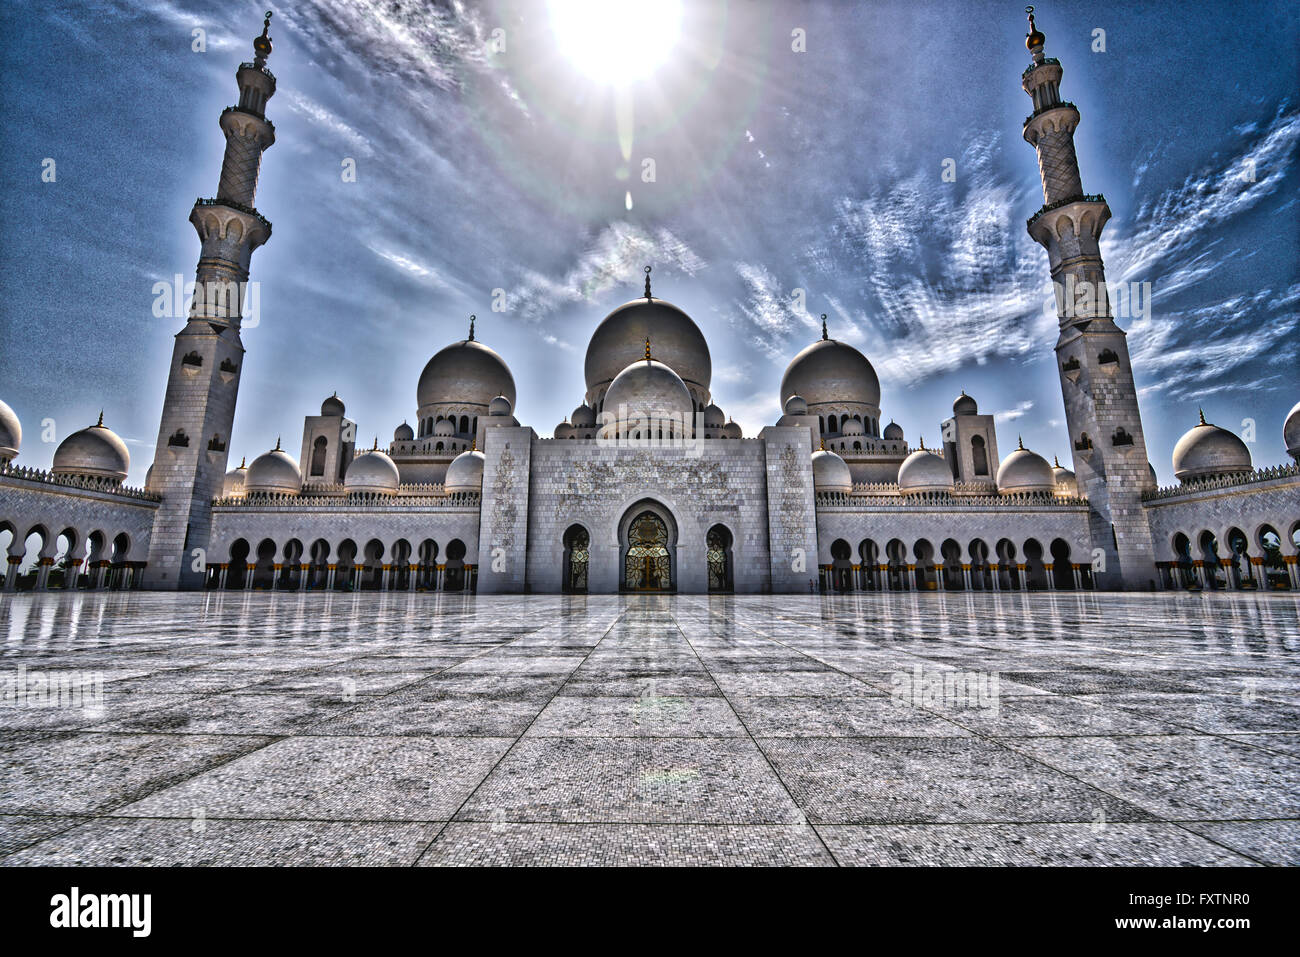 HDR view of the central area of the Sheikh Zayed Grand Mosque in Abu Dhabi - Stock Image